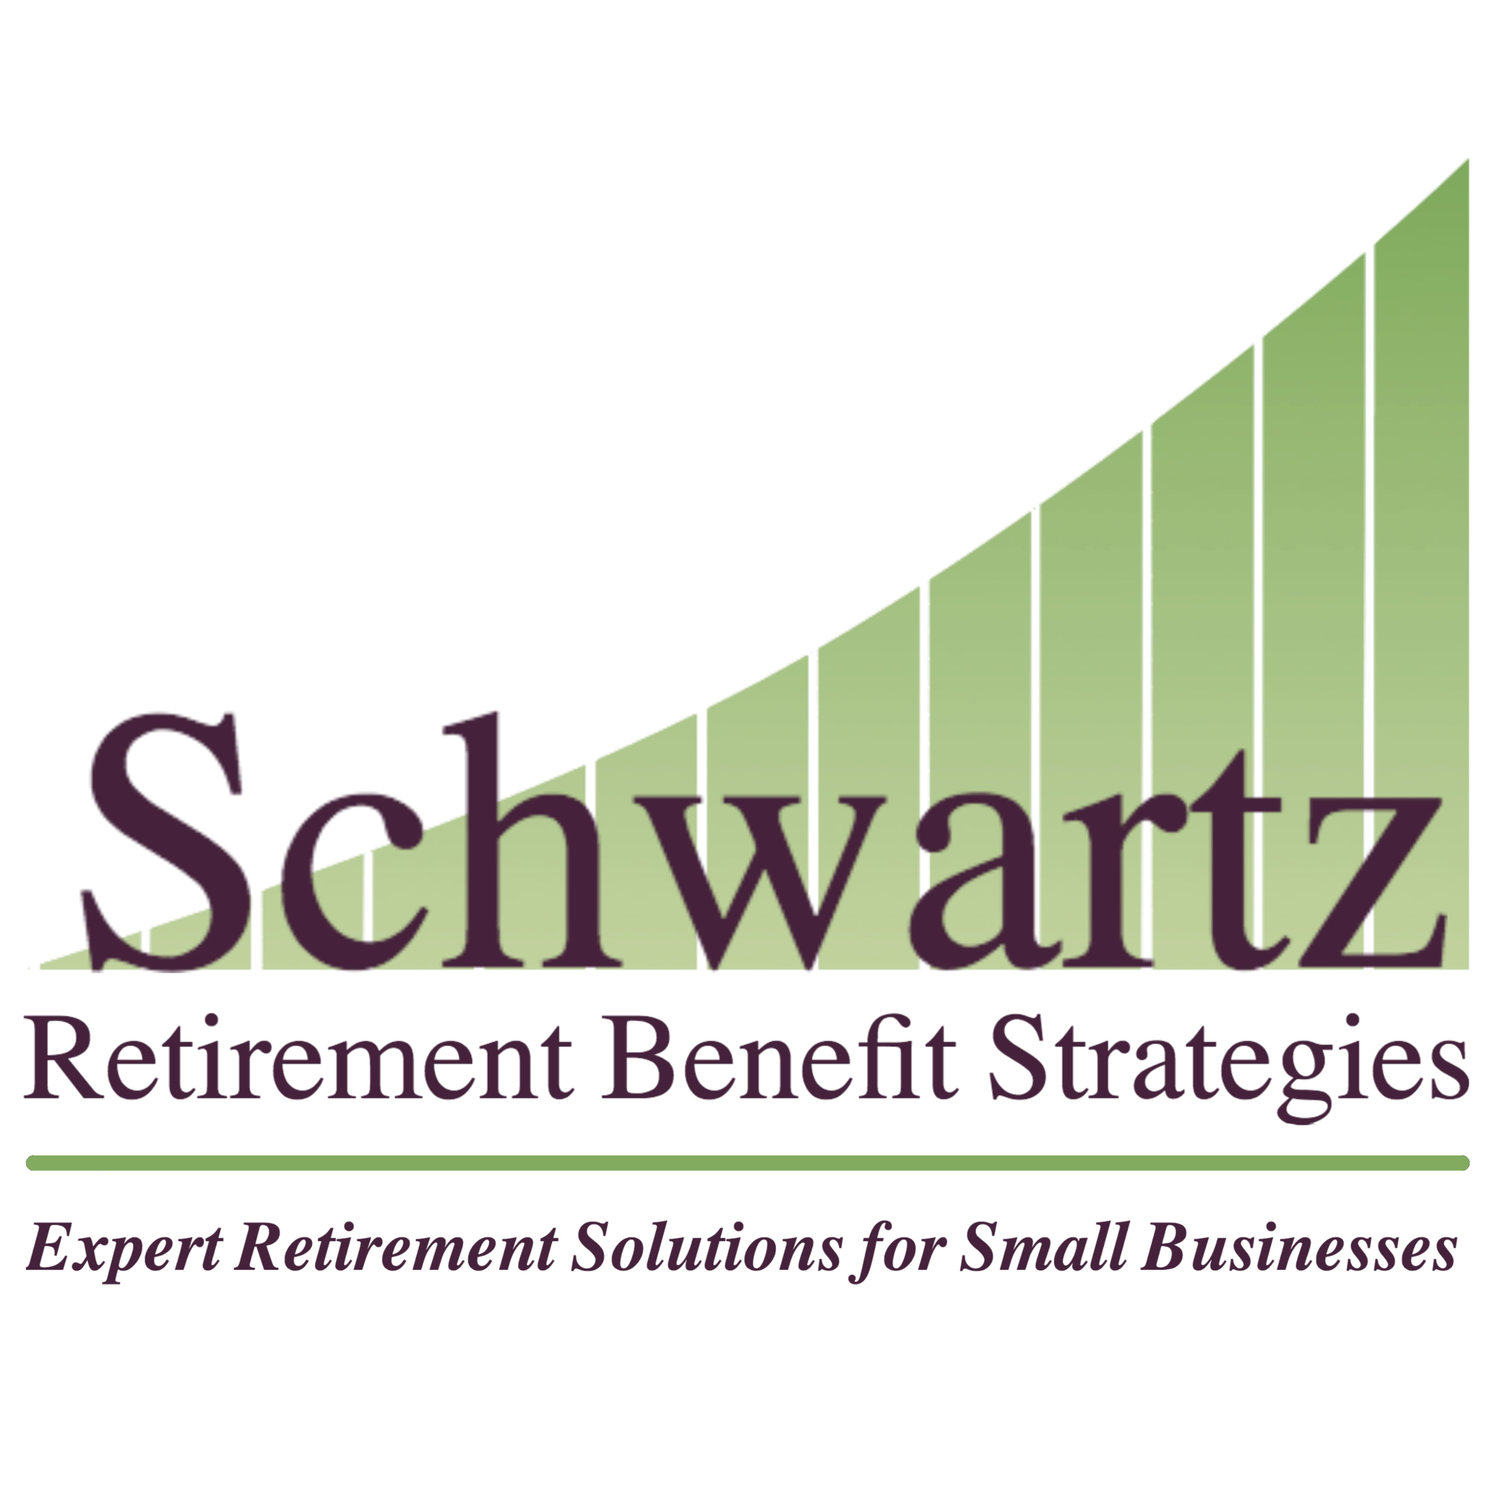 Schwartz Retirement Benefit Strategies